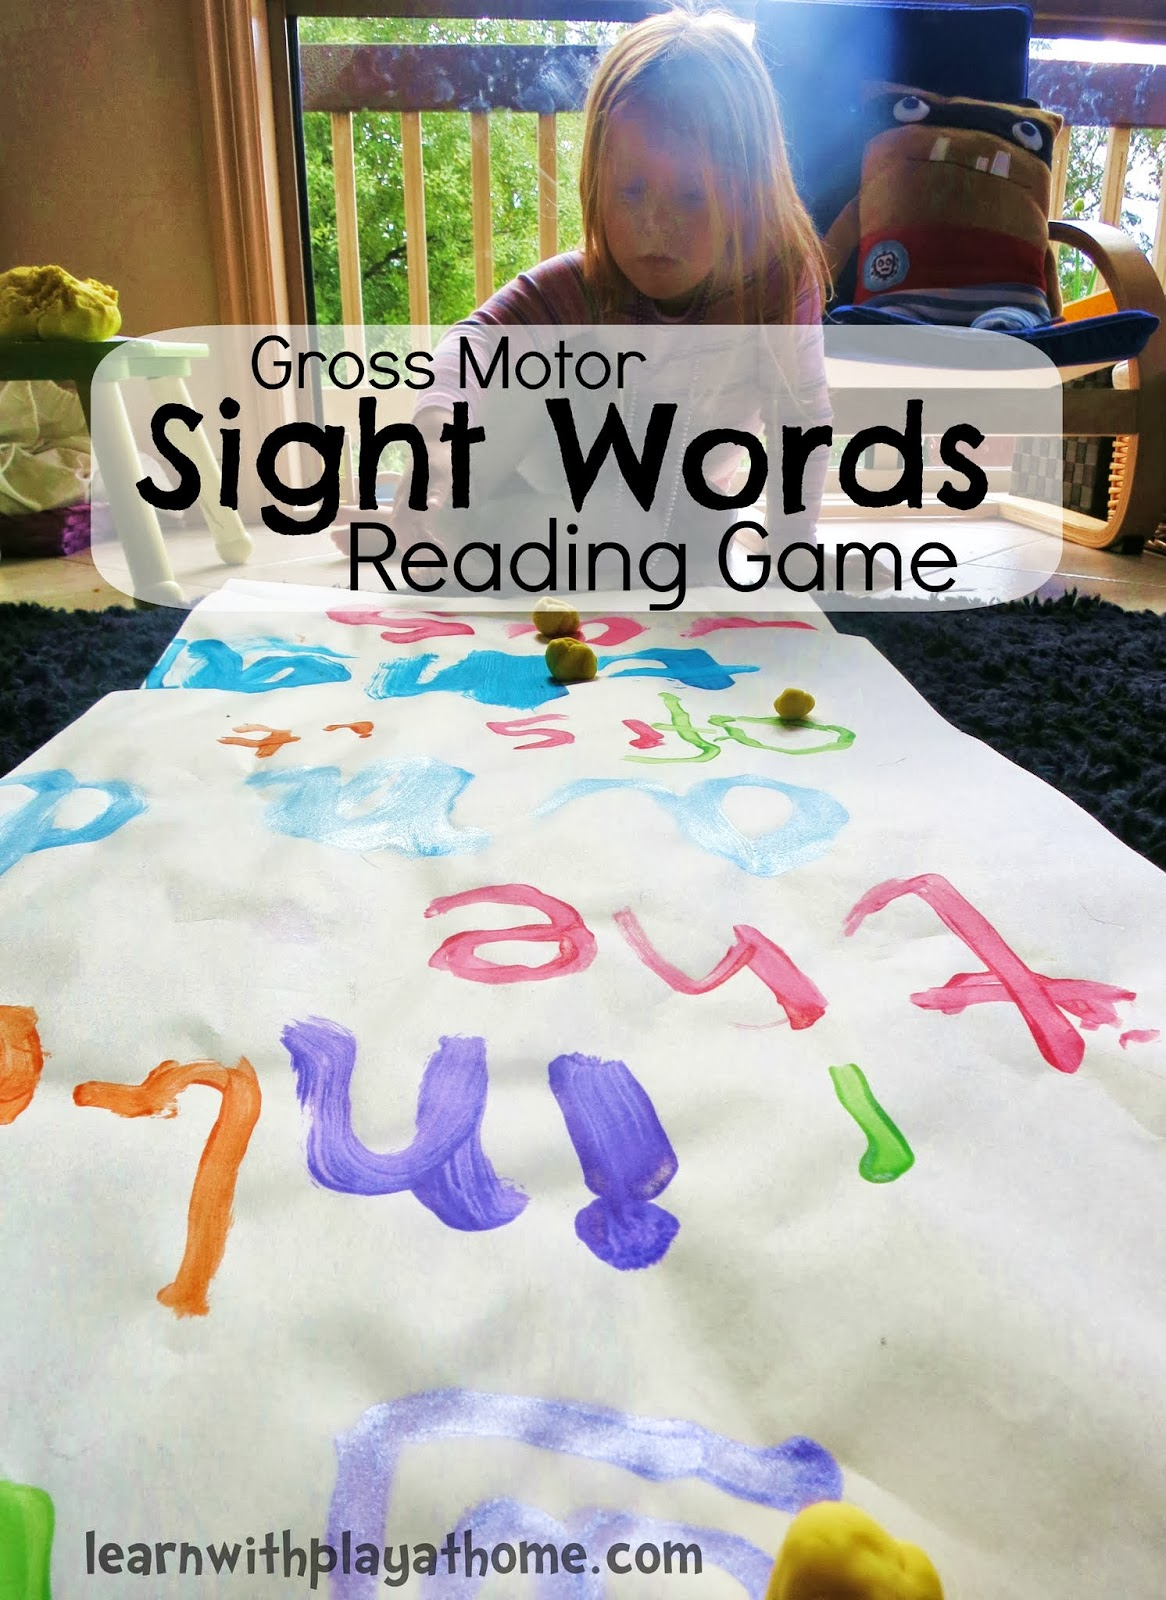 Sight words reading Game Reading Words. Learning  sight Motor and Gross